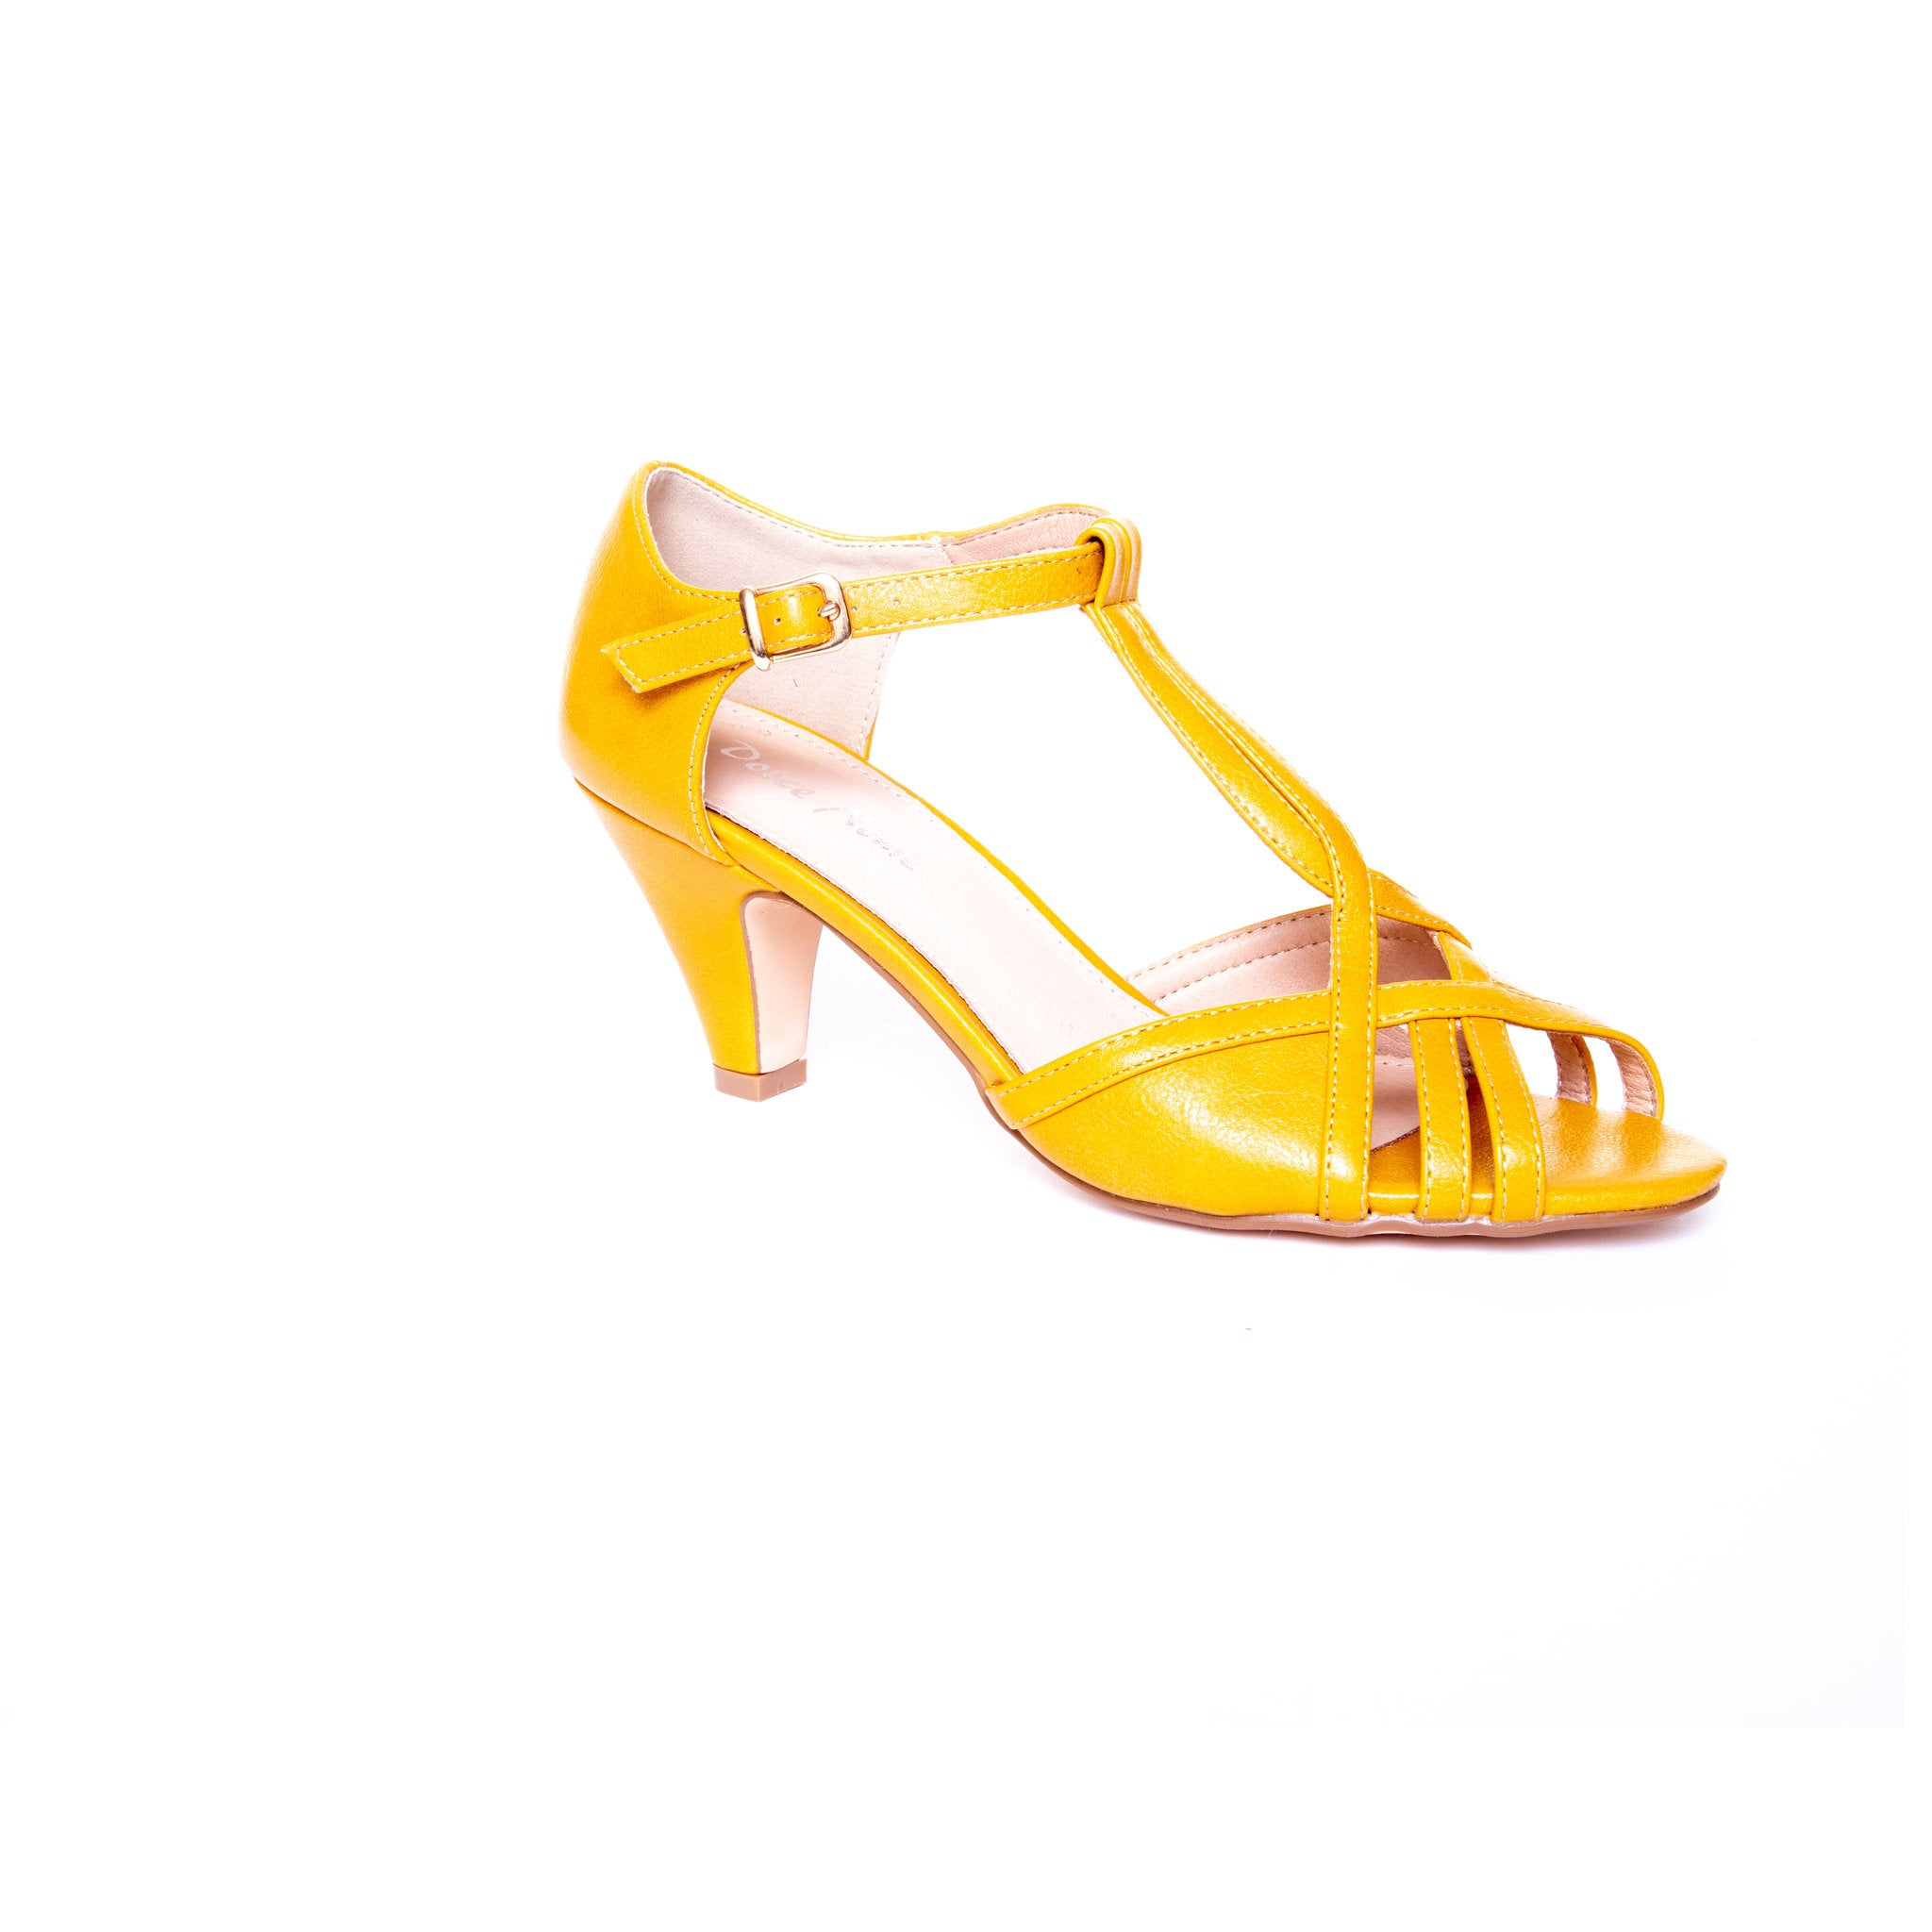 Becca by Dolce Nome | Open Toe Heel Sandals in Mustard (main view)